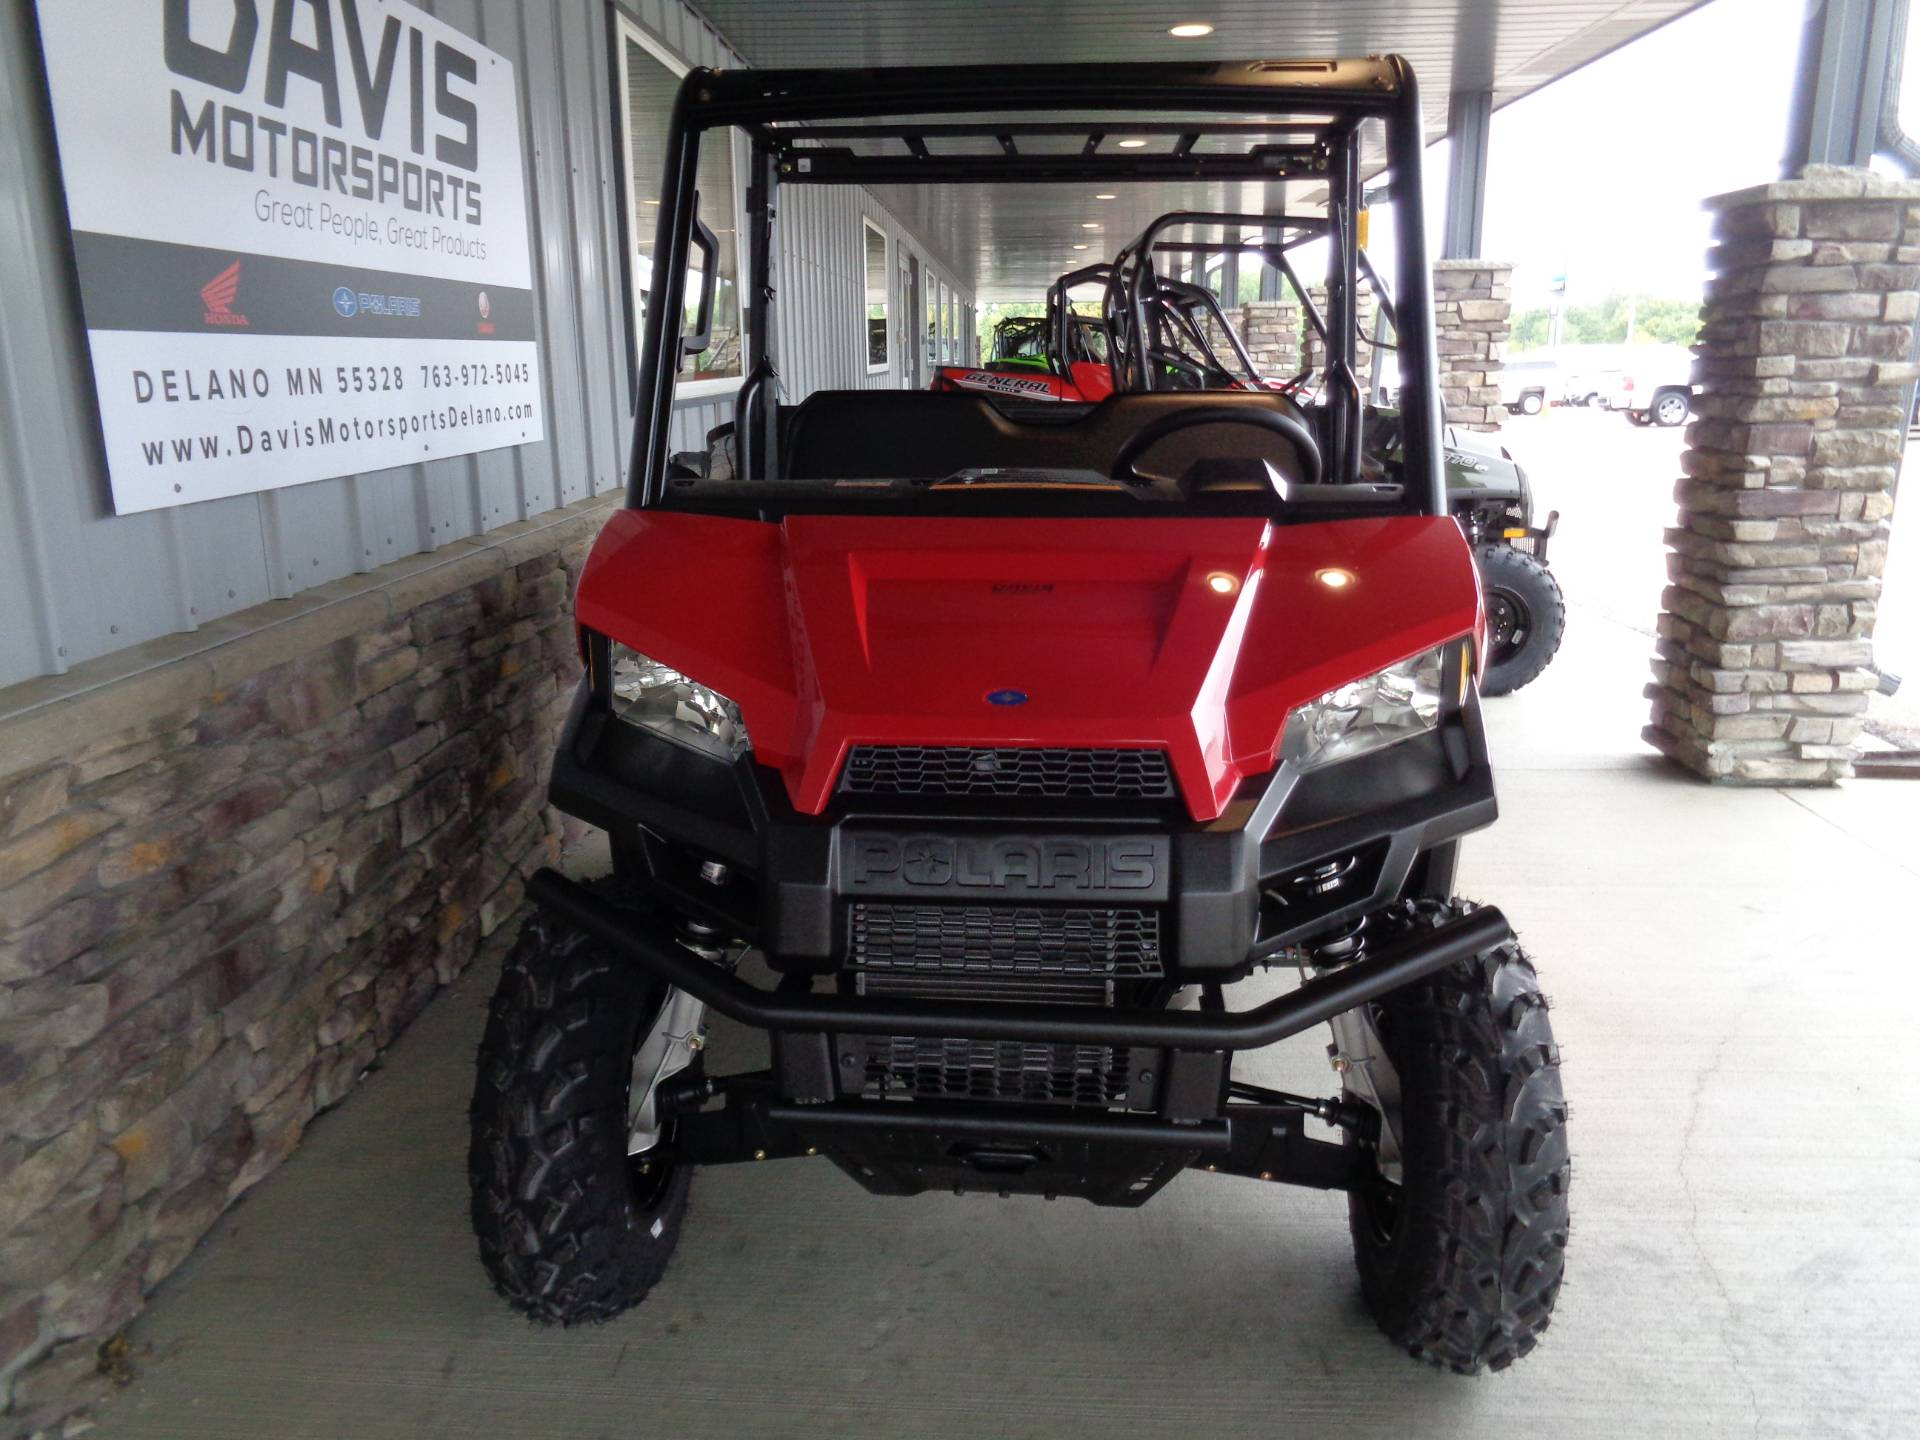 2021 Polaris Ranger 500 in Delano, Minnesota - Photo 9